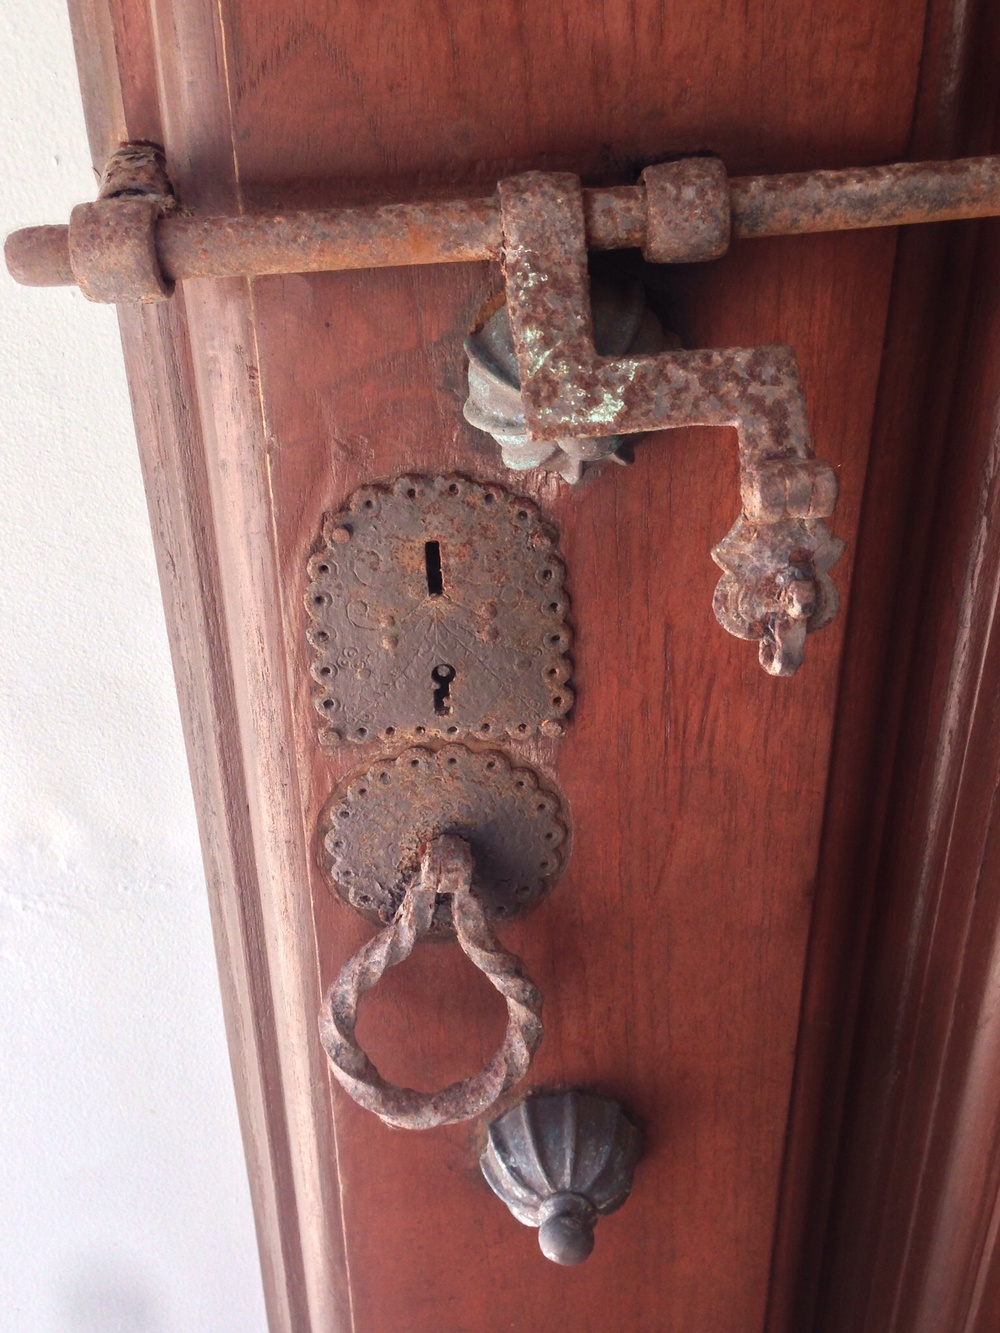 Vintage hardware is a great, and easy, detail that brings a unique quality to the home.